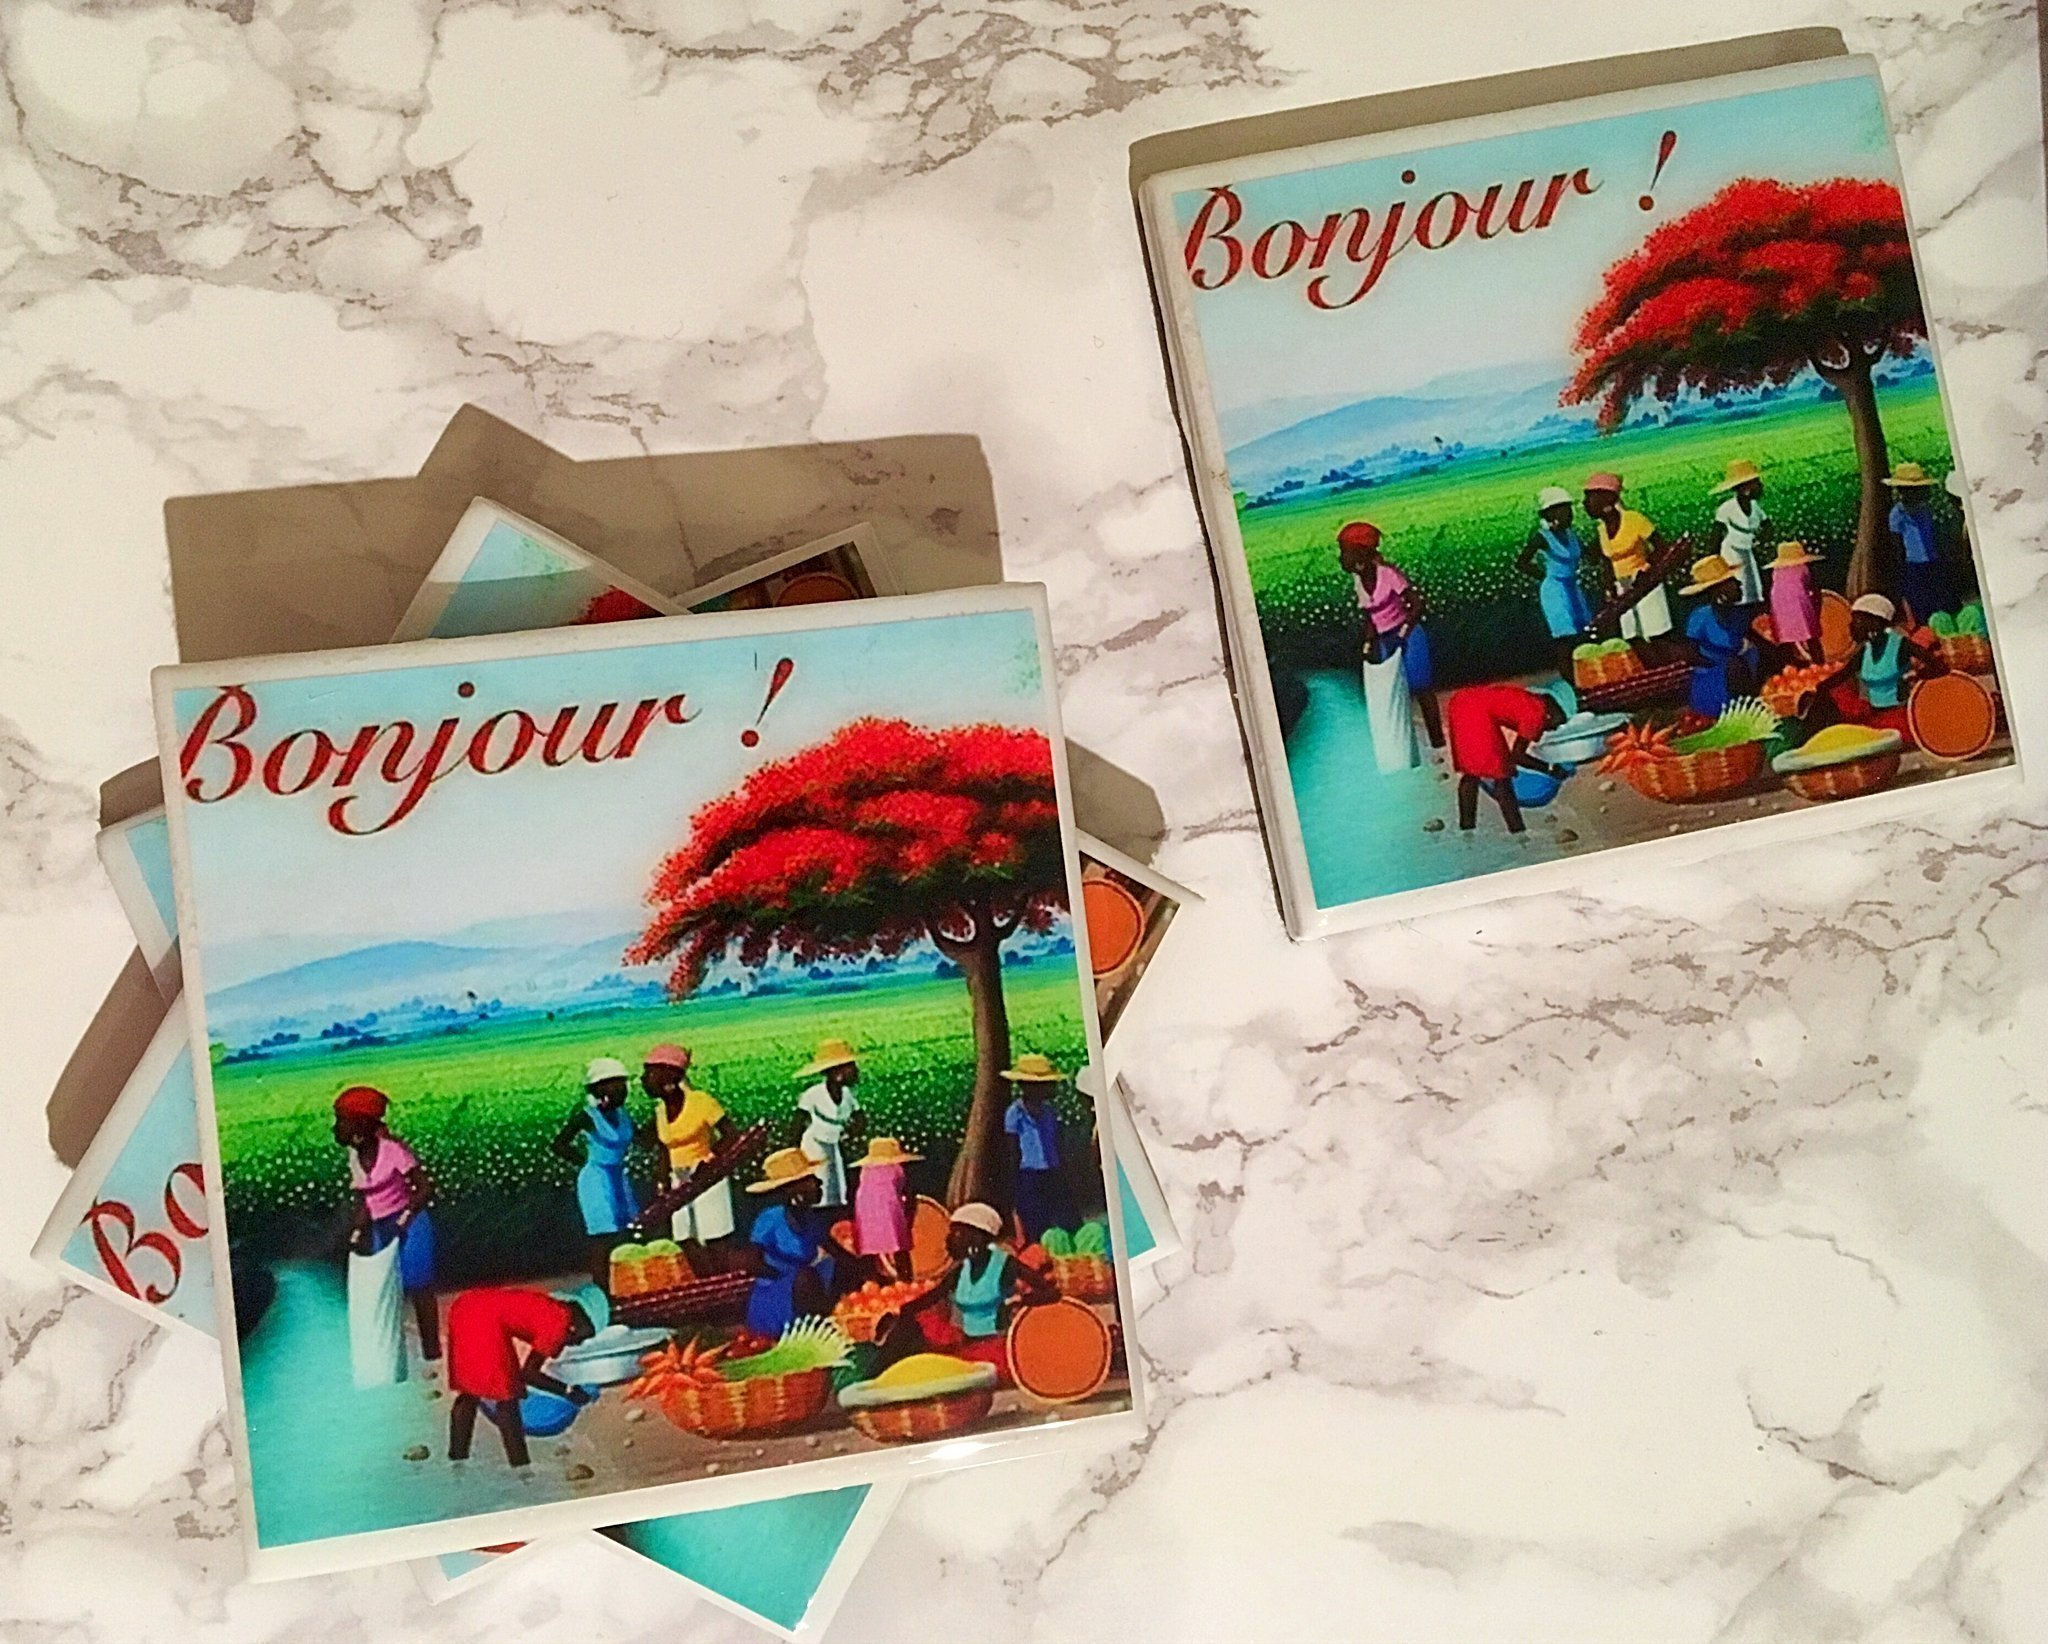 Bonjour! Good Morning Coasters Set of 4 - Everyday Decor, Housewarming Gifts, Gift for Hostess, Birthday Gift, Coffee Tea Drinker, Wine Coasters, Dining Coasters, Table Art, Caribbean Decor